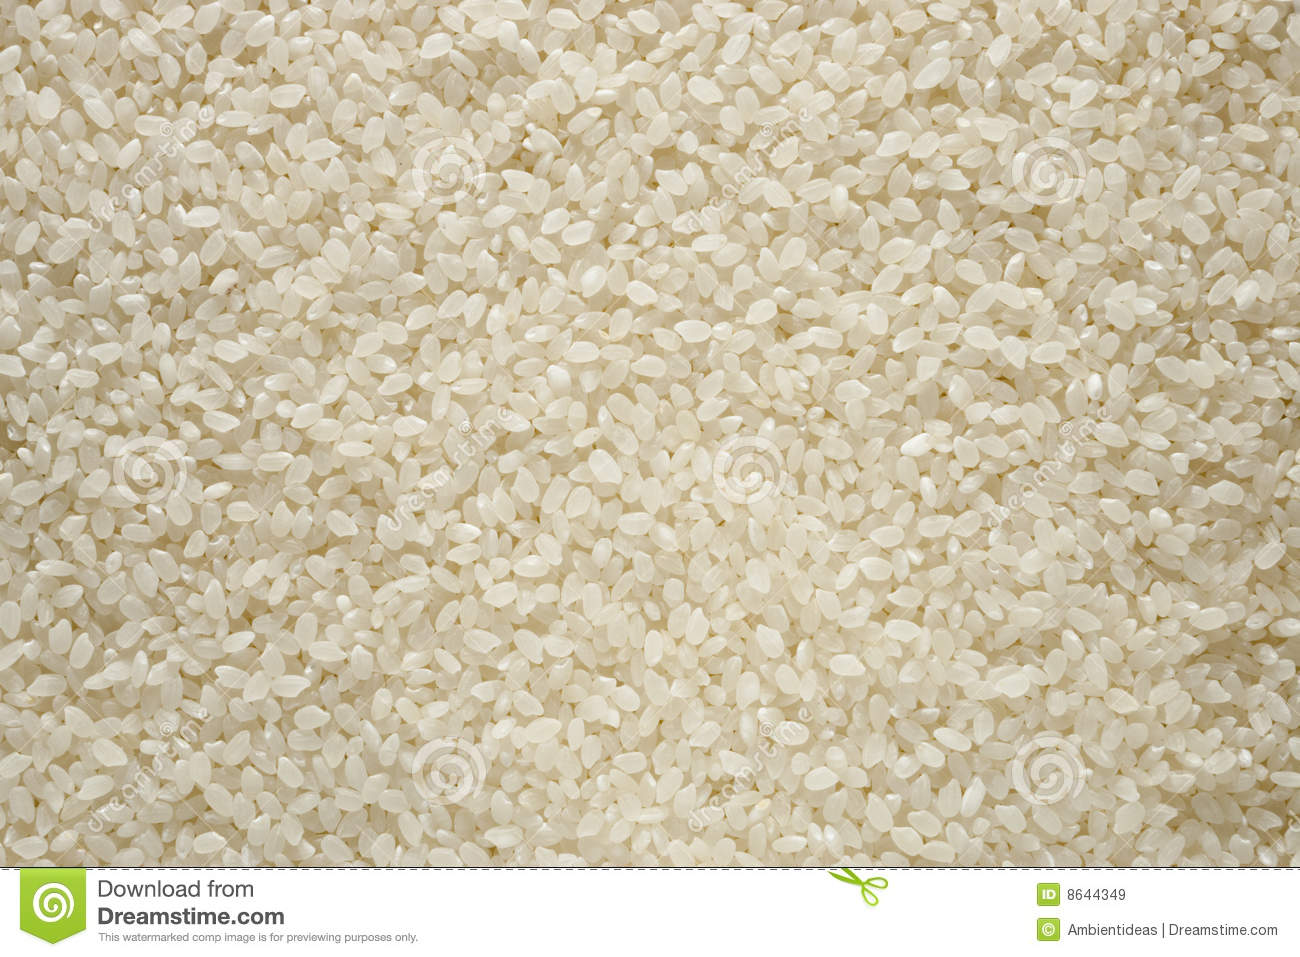 Sushi Rice Royalty Free Stock Images - Image: 8644349